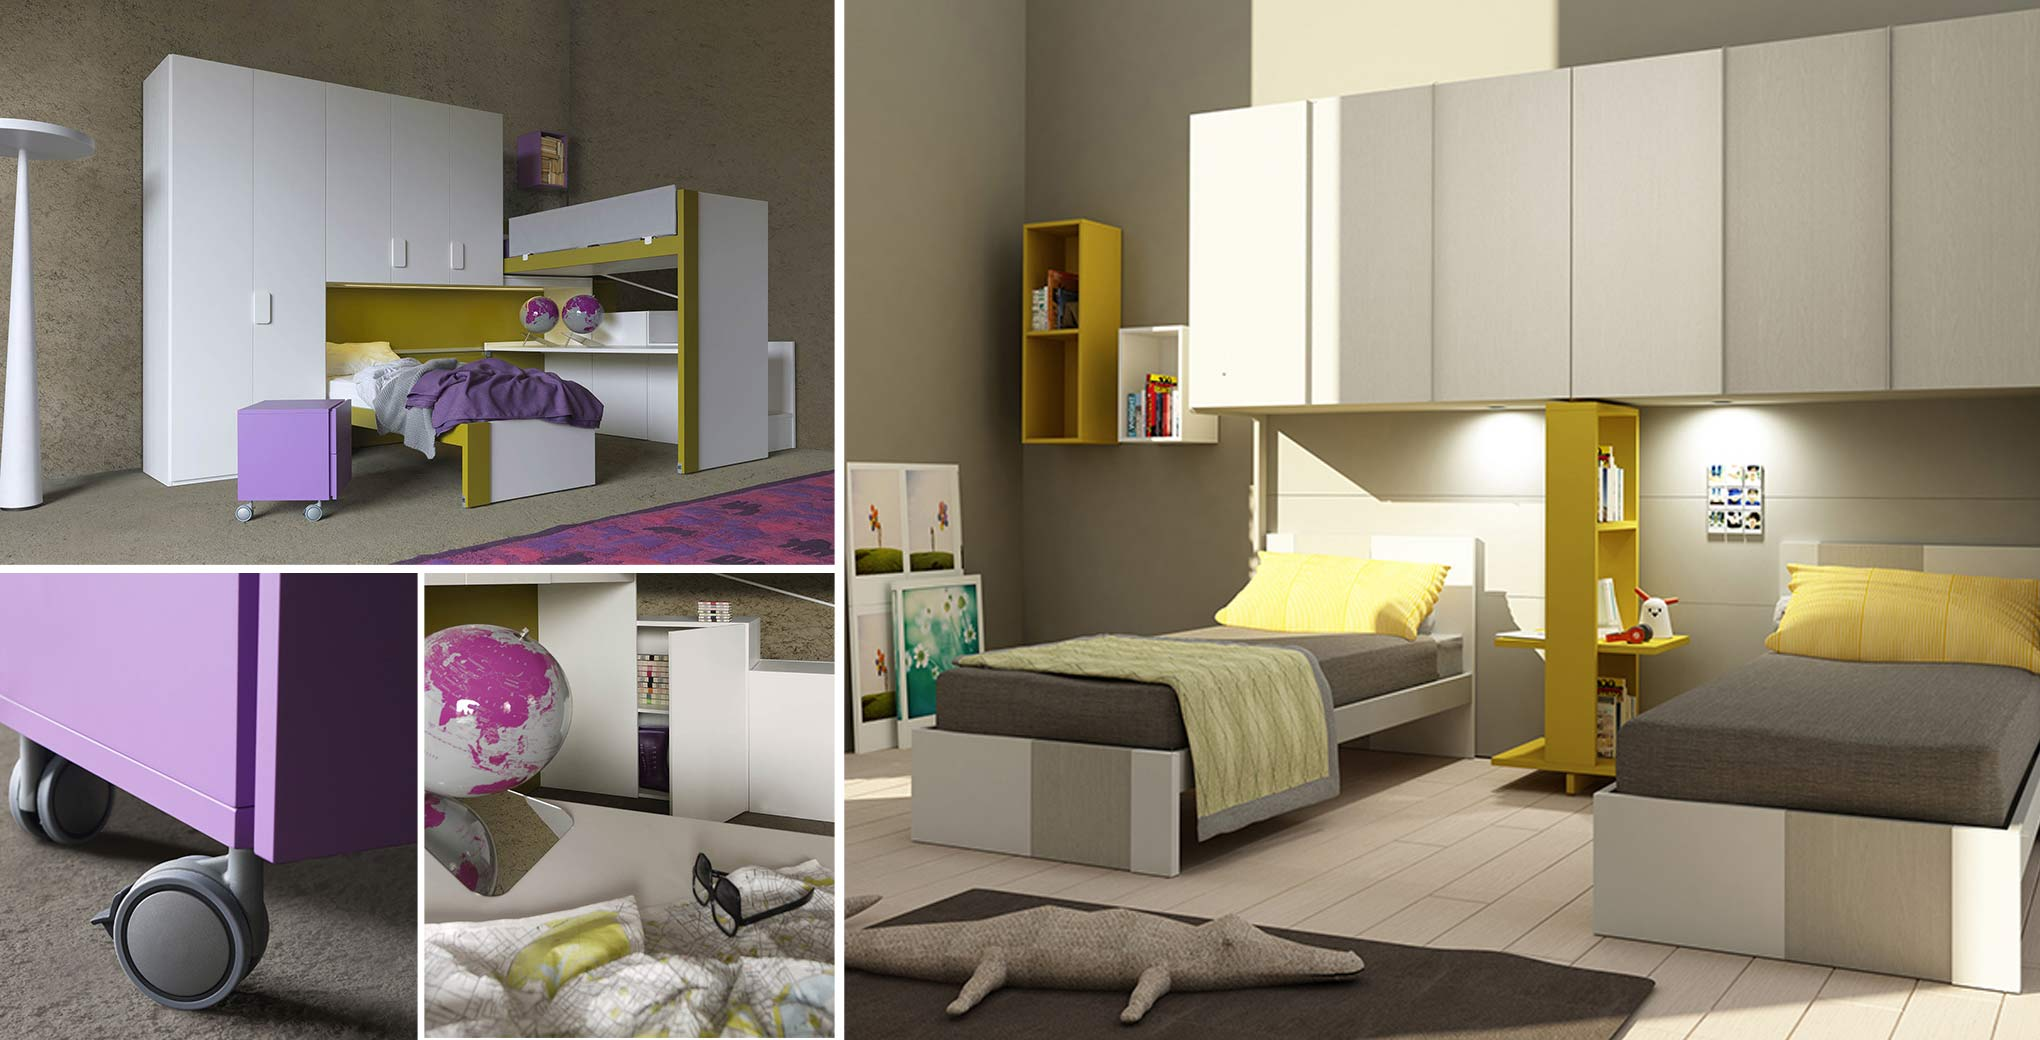 # CHILDREN'S BEDROOM 'NATURAL'